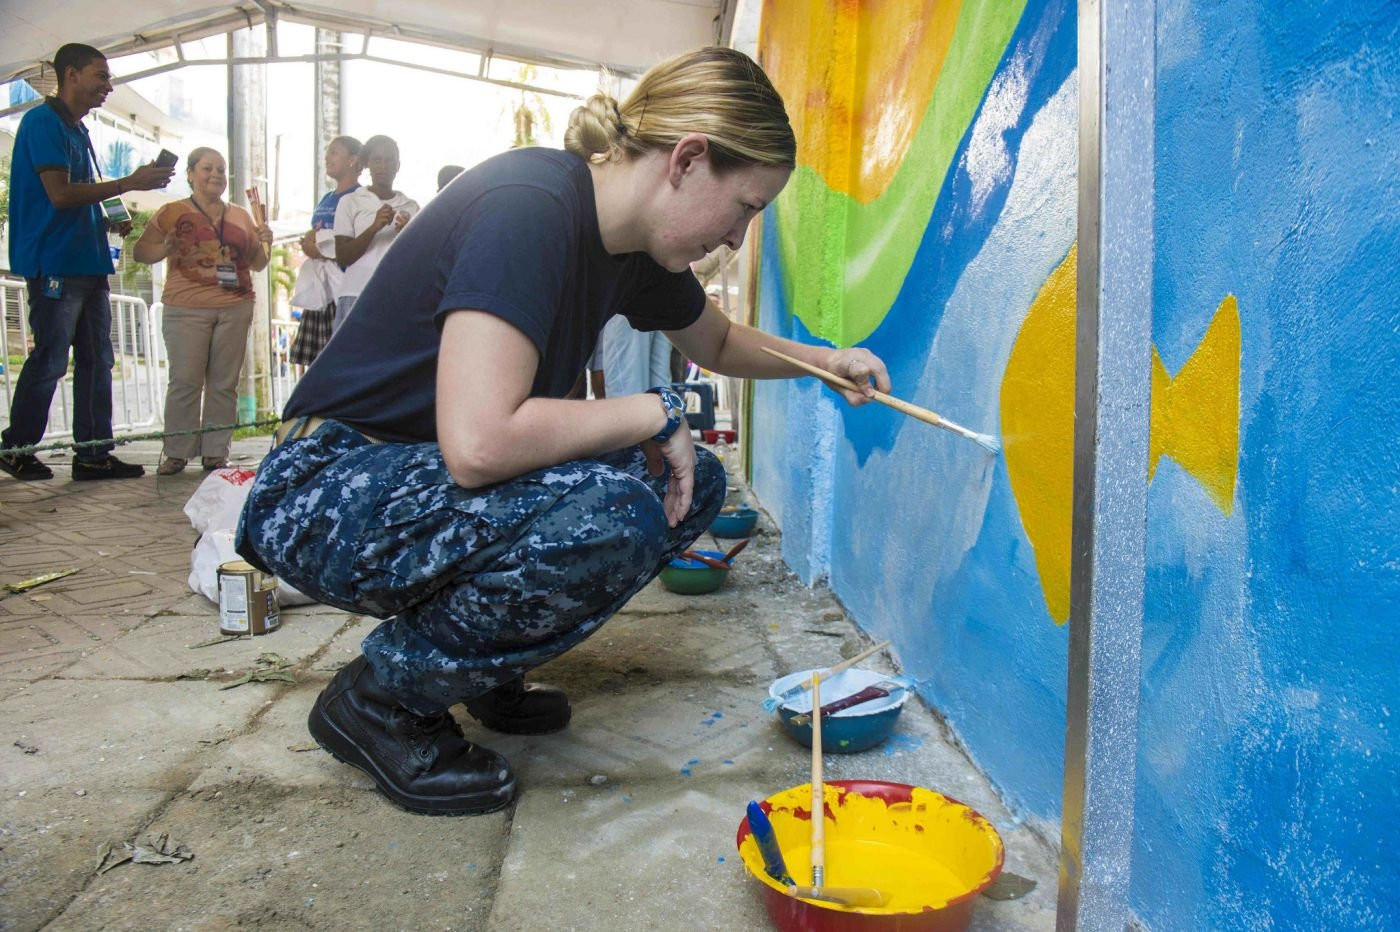 USNS Comfort Continues Humanitarian Mission in Colombia as Part of Continuing Promise 2015